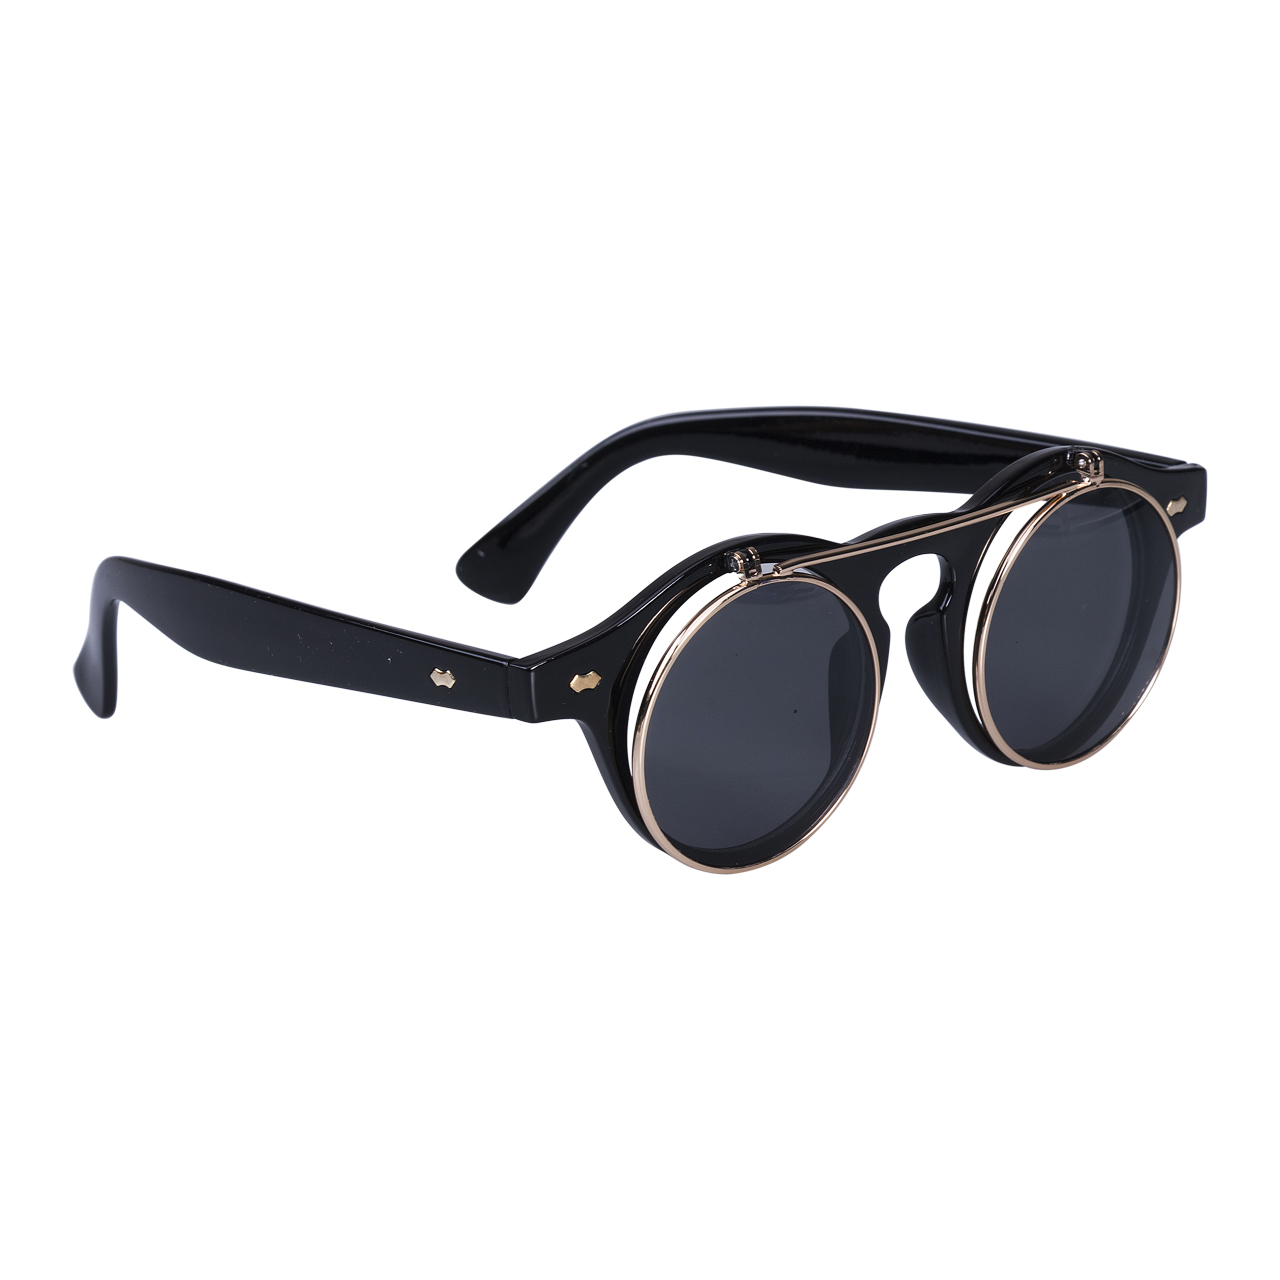 Summer Swim Eyewear Glasses Men Women Retro Flip Up Round Sunglasses Vintage Black